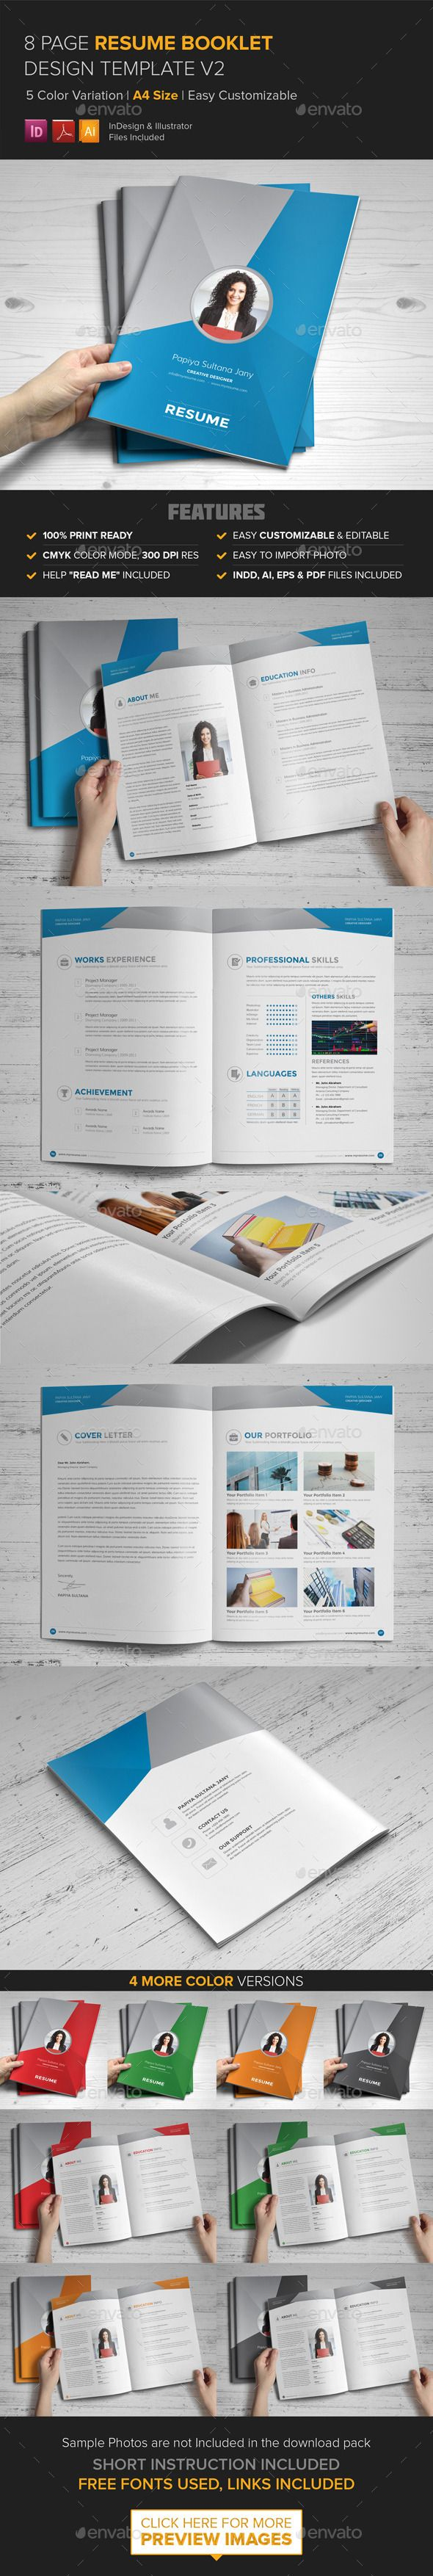 490 best images about resumes cv s cover letters on pinterest